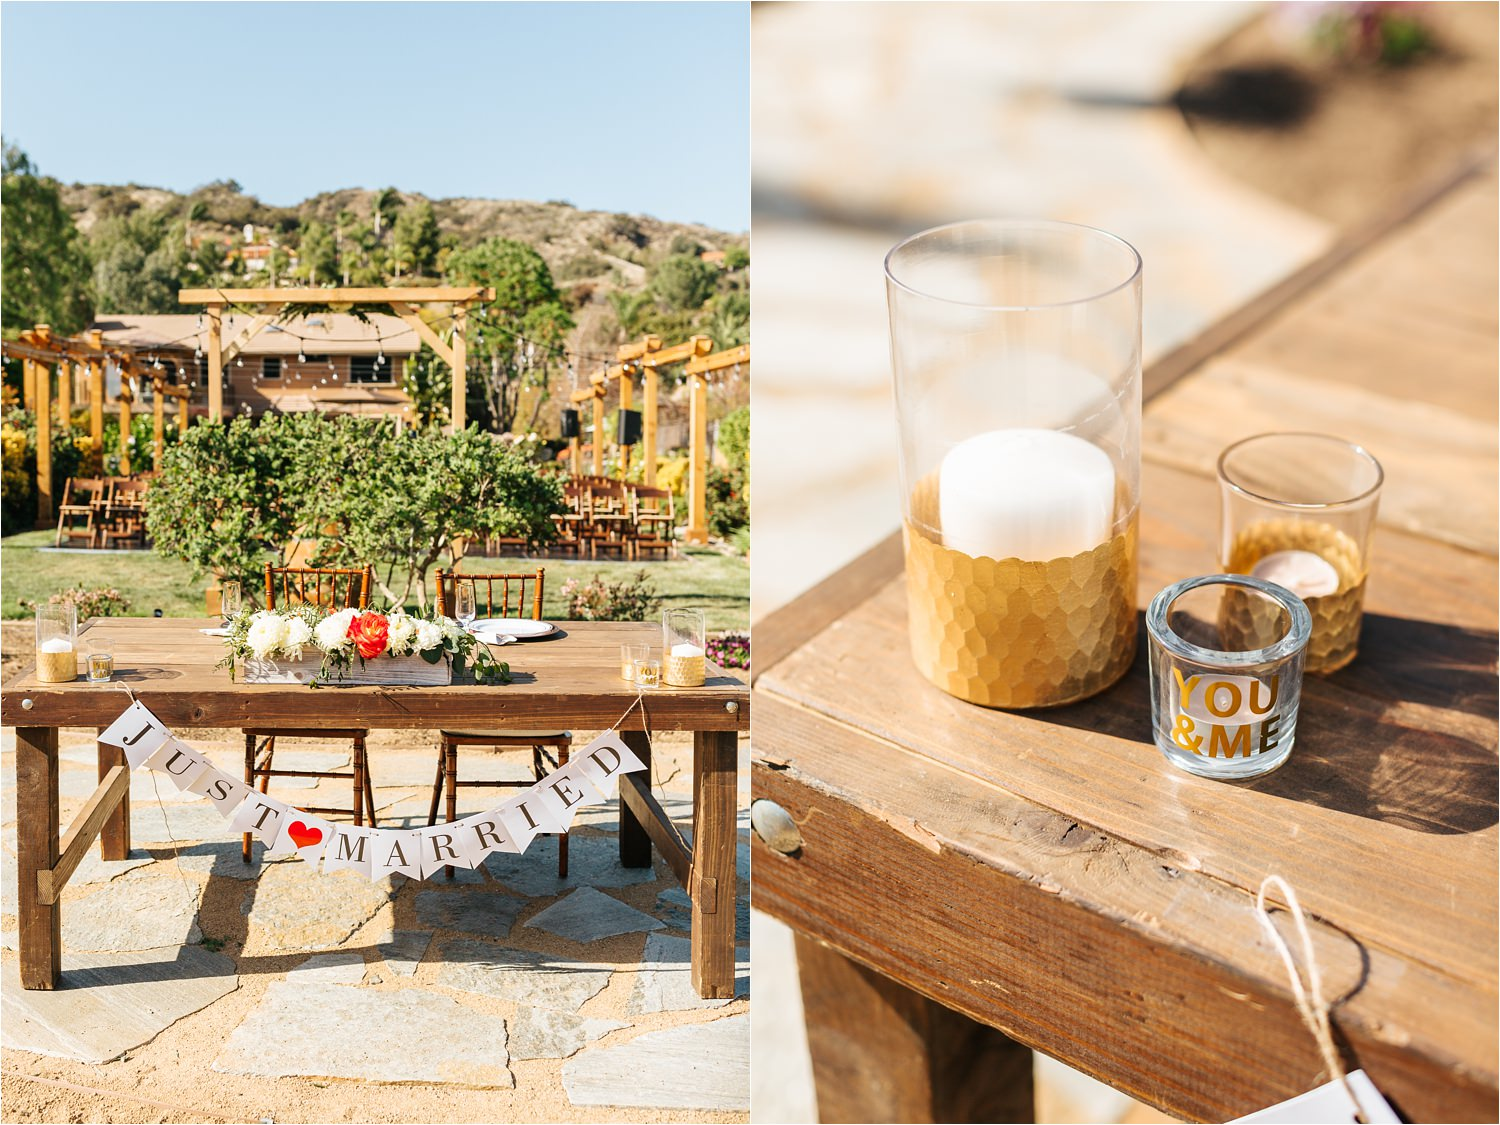 Dreamy backyard wedding details - DIY wedding in California - https://brittneyhannonphotography.com